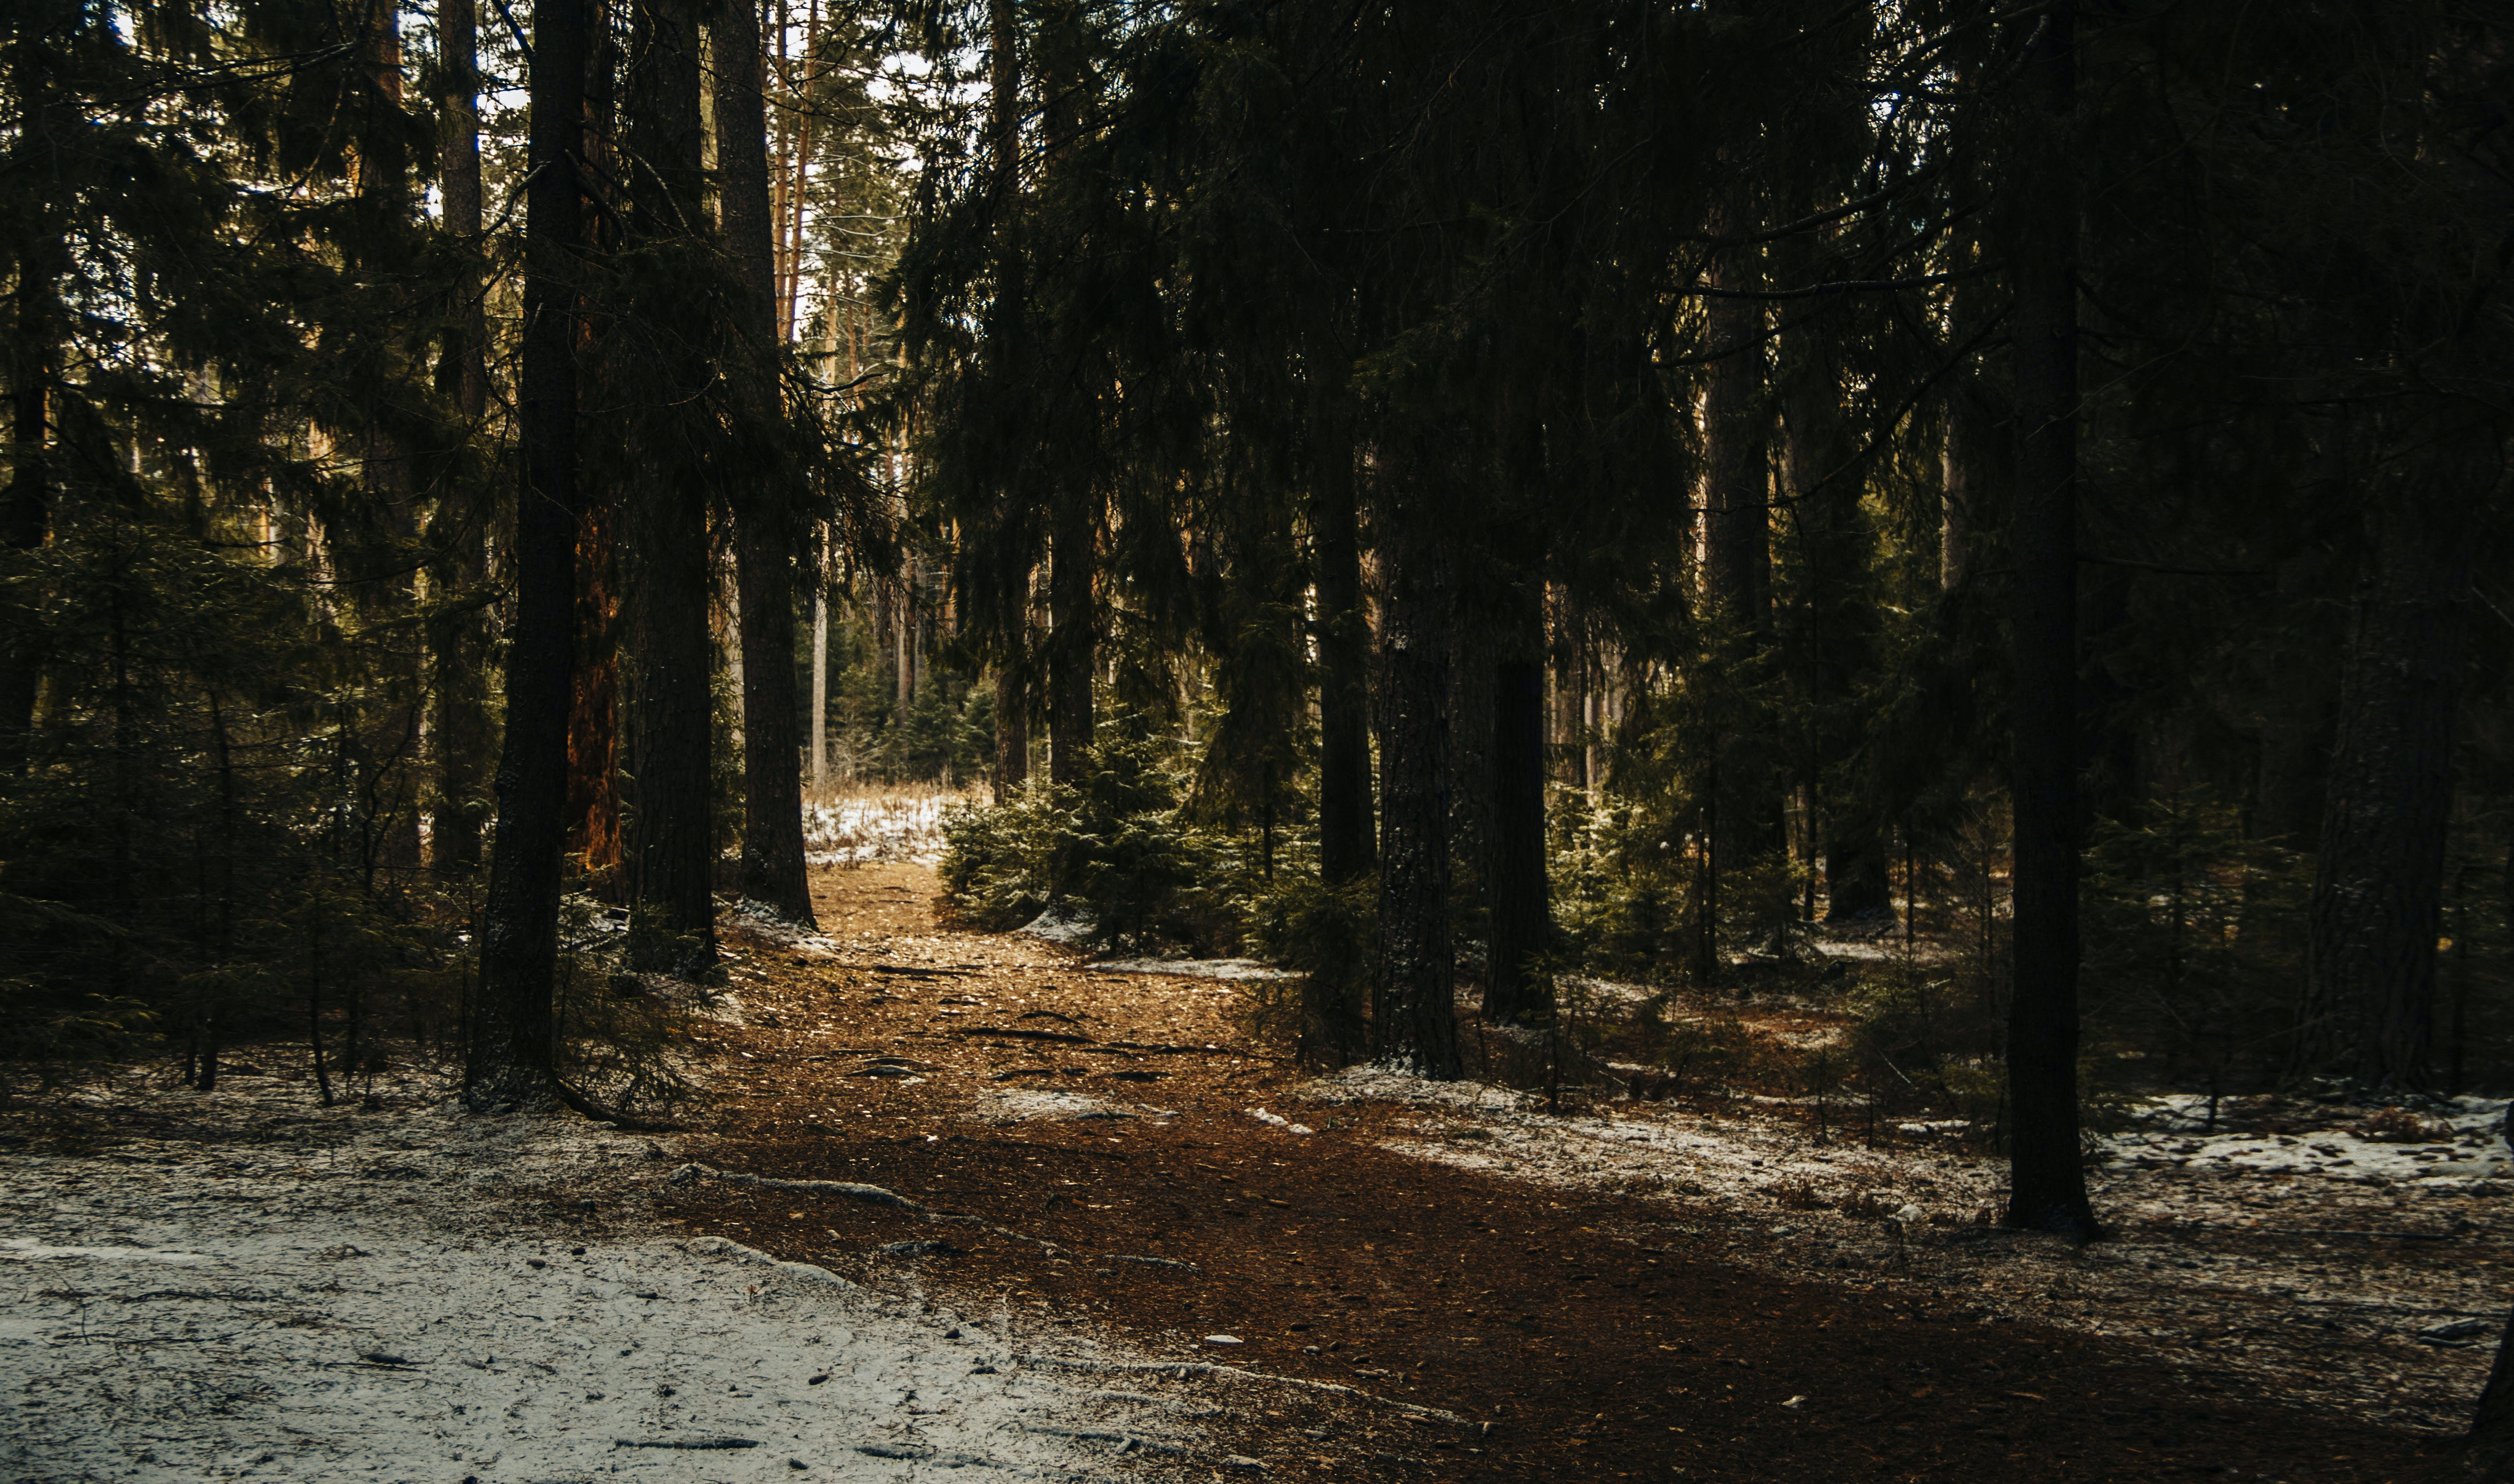 Landscape Photography of Forest Trees